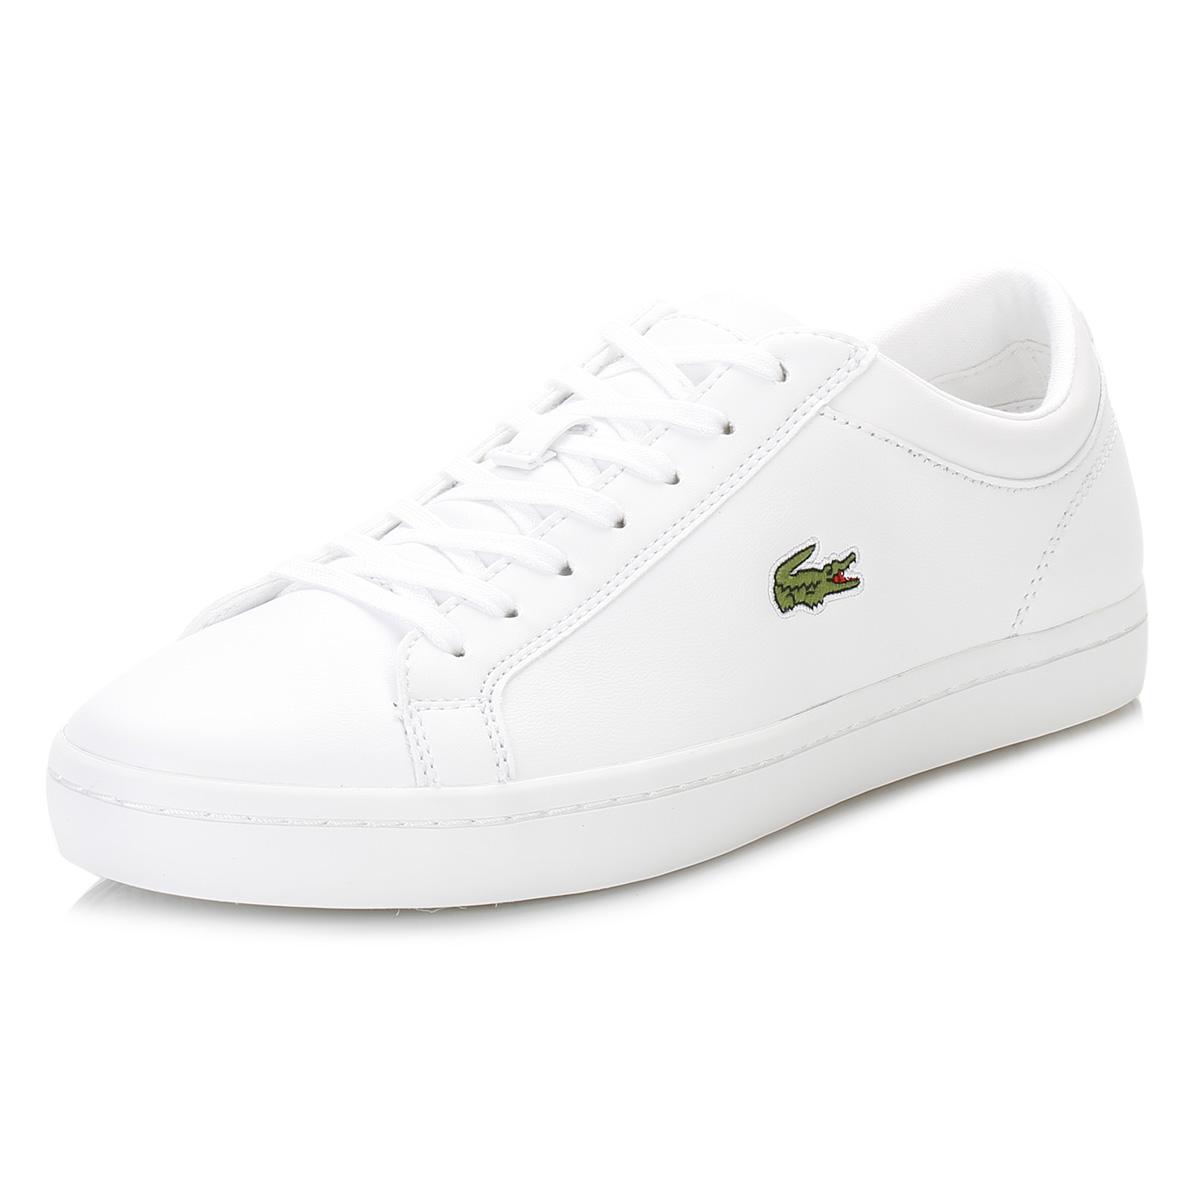 211e28c28e80f Details about Lacoste Womens White Trainers